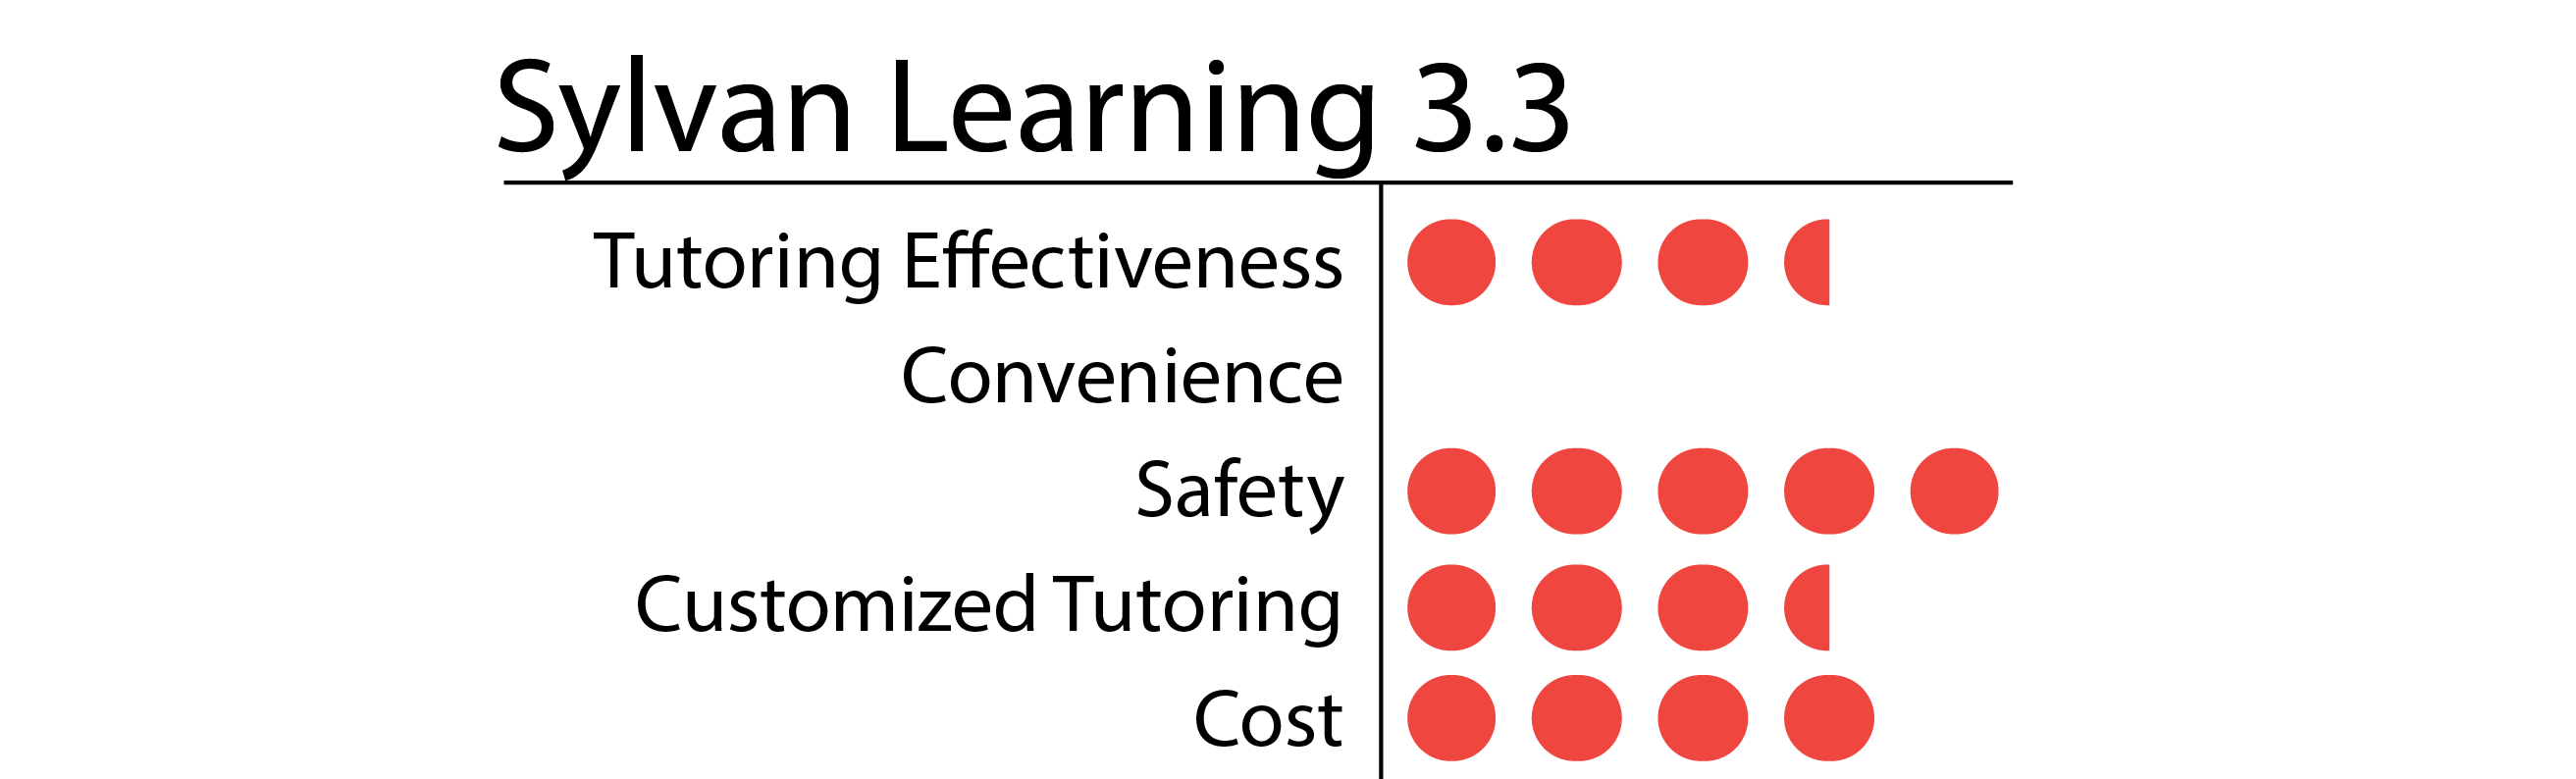 Sylvan Learning-01